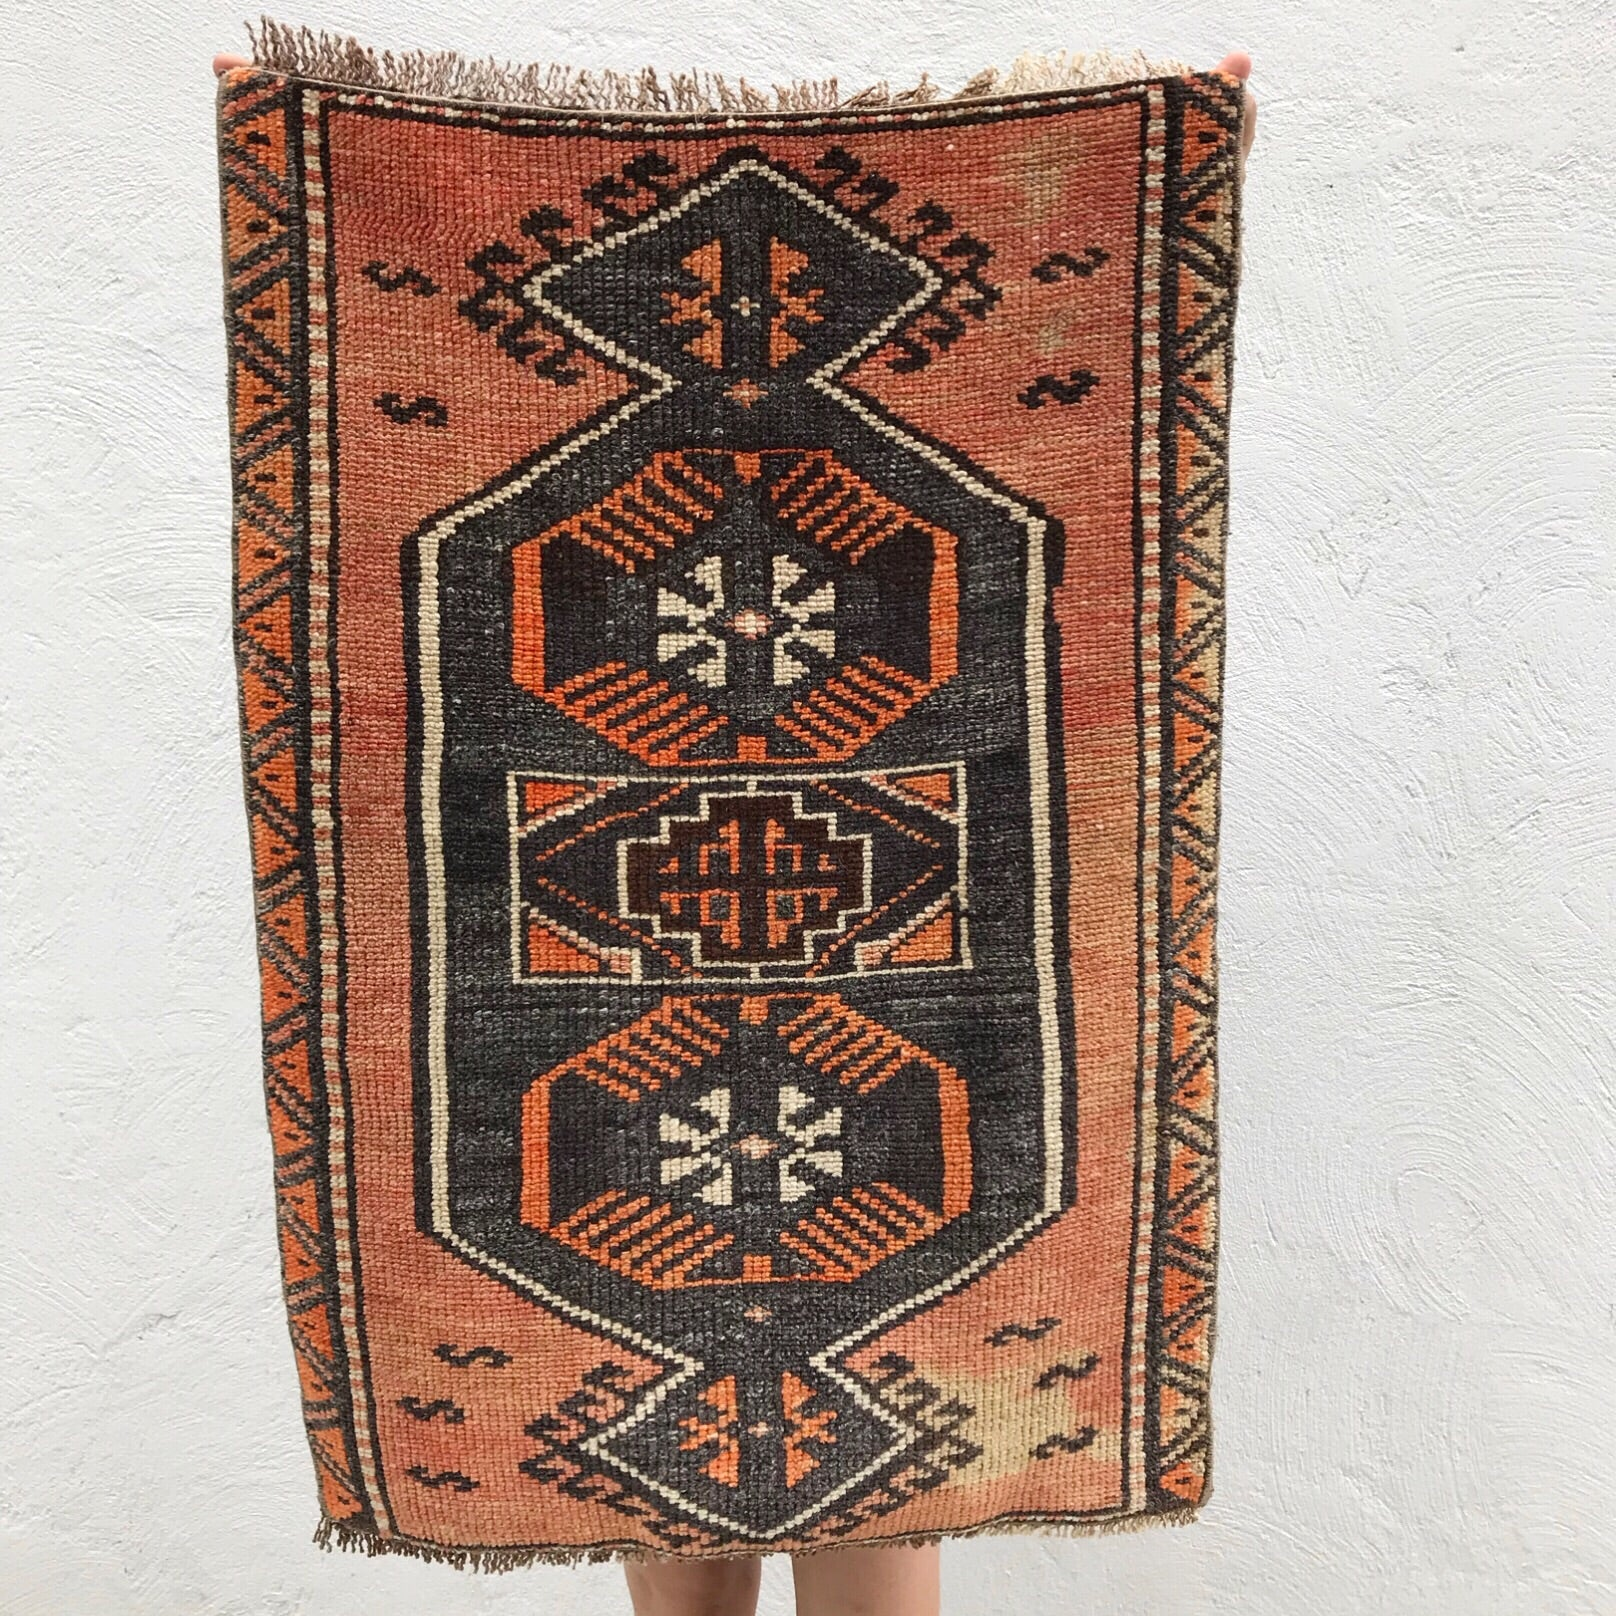 This small handwoven vintage Turkish rug has a great design and warm colors. Super soft pile. Great for entryways, bathrooms, kitchens and layering. 26x36""